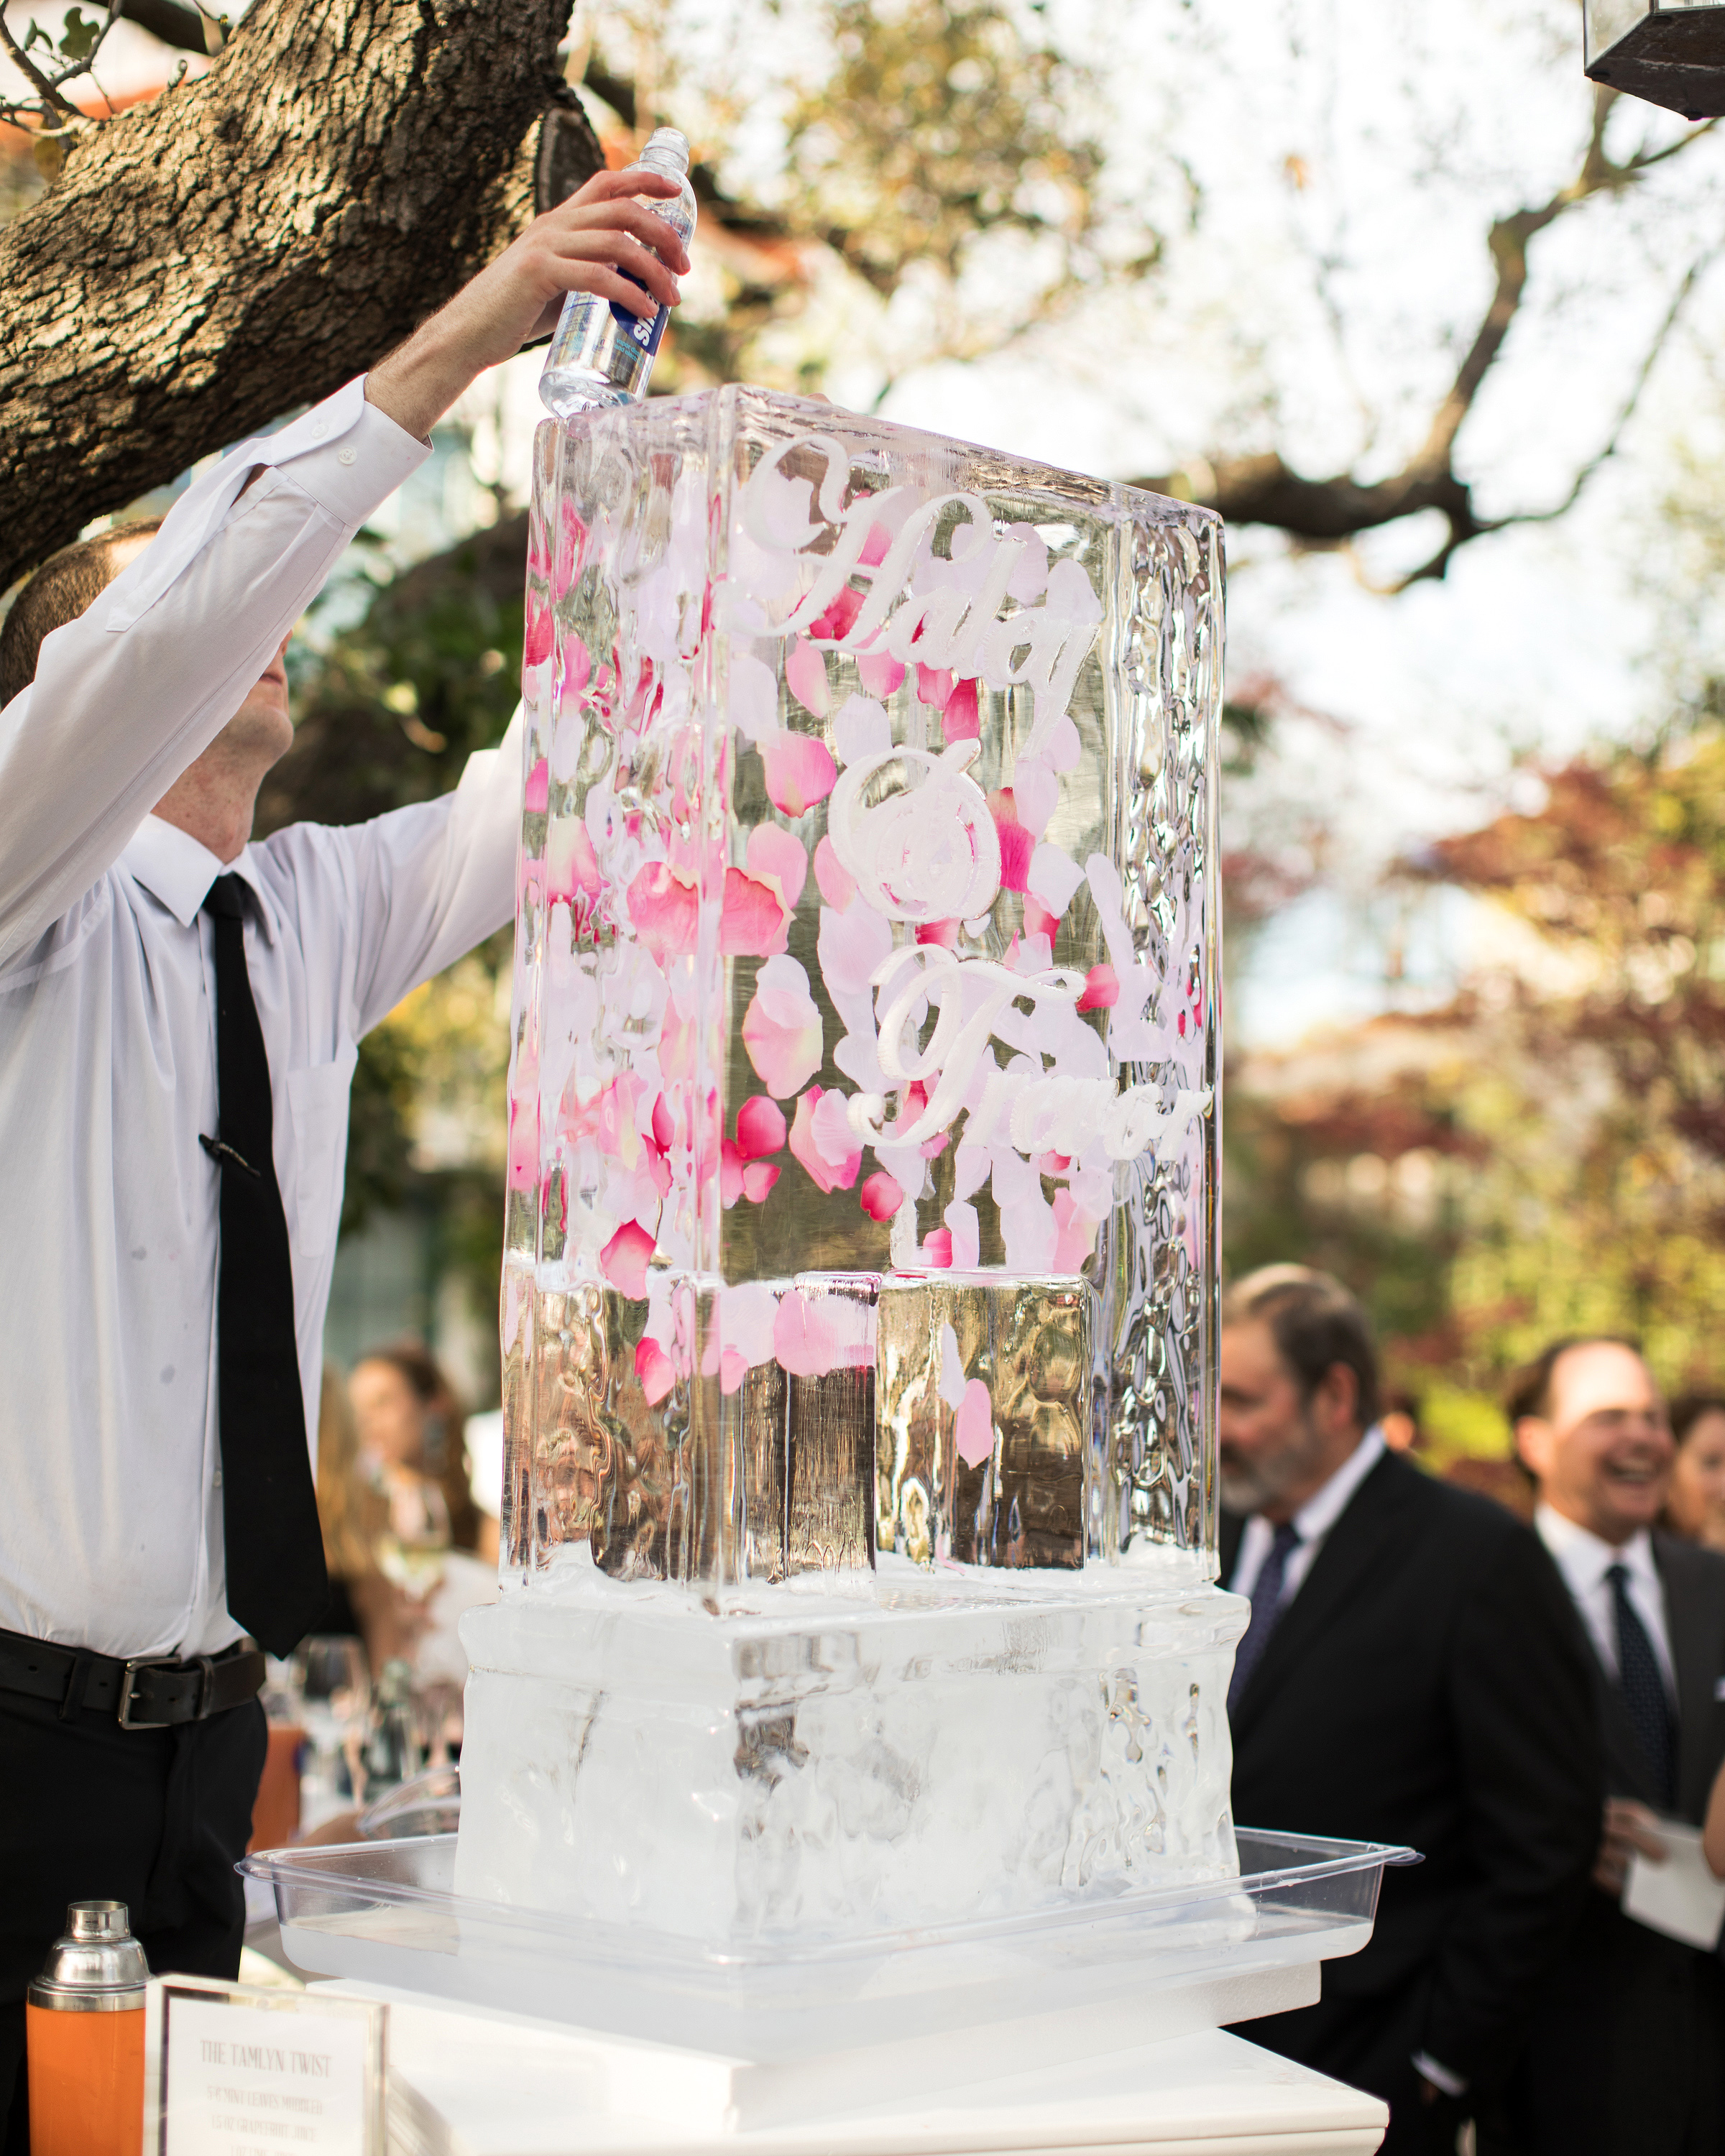 wedding ice sculpture rose petals drink station